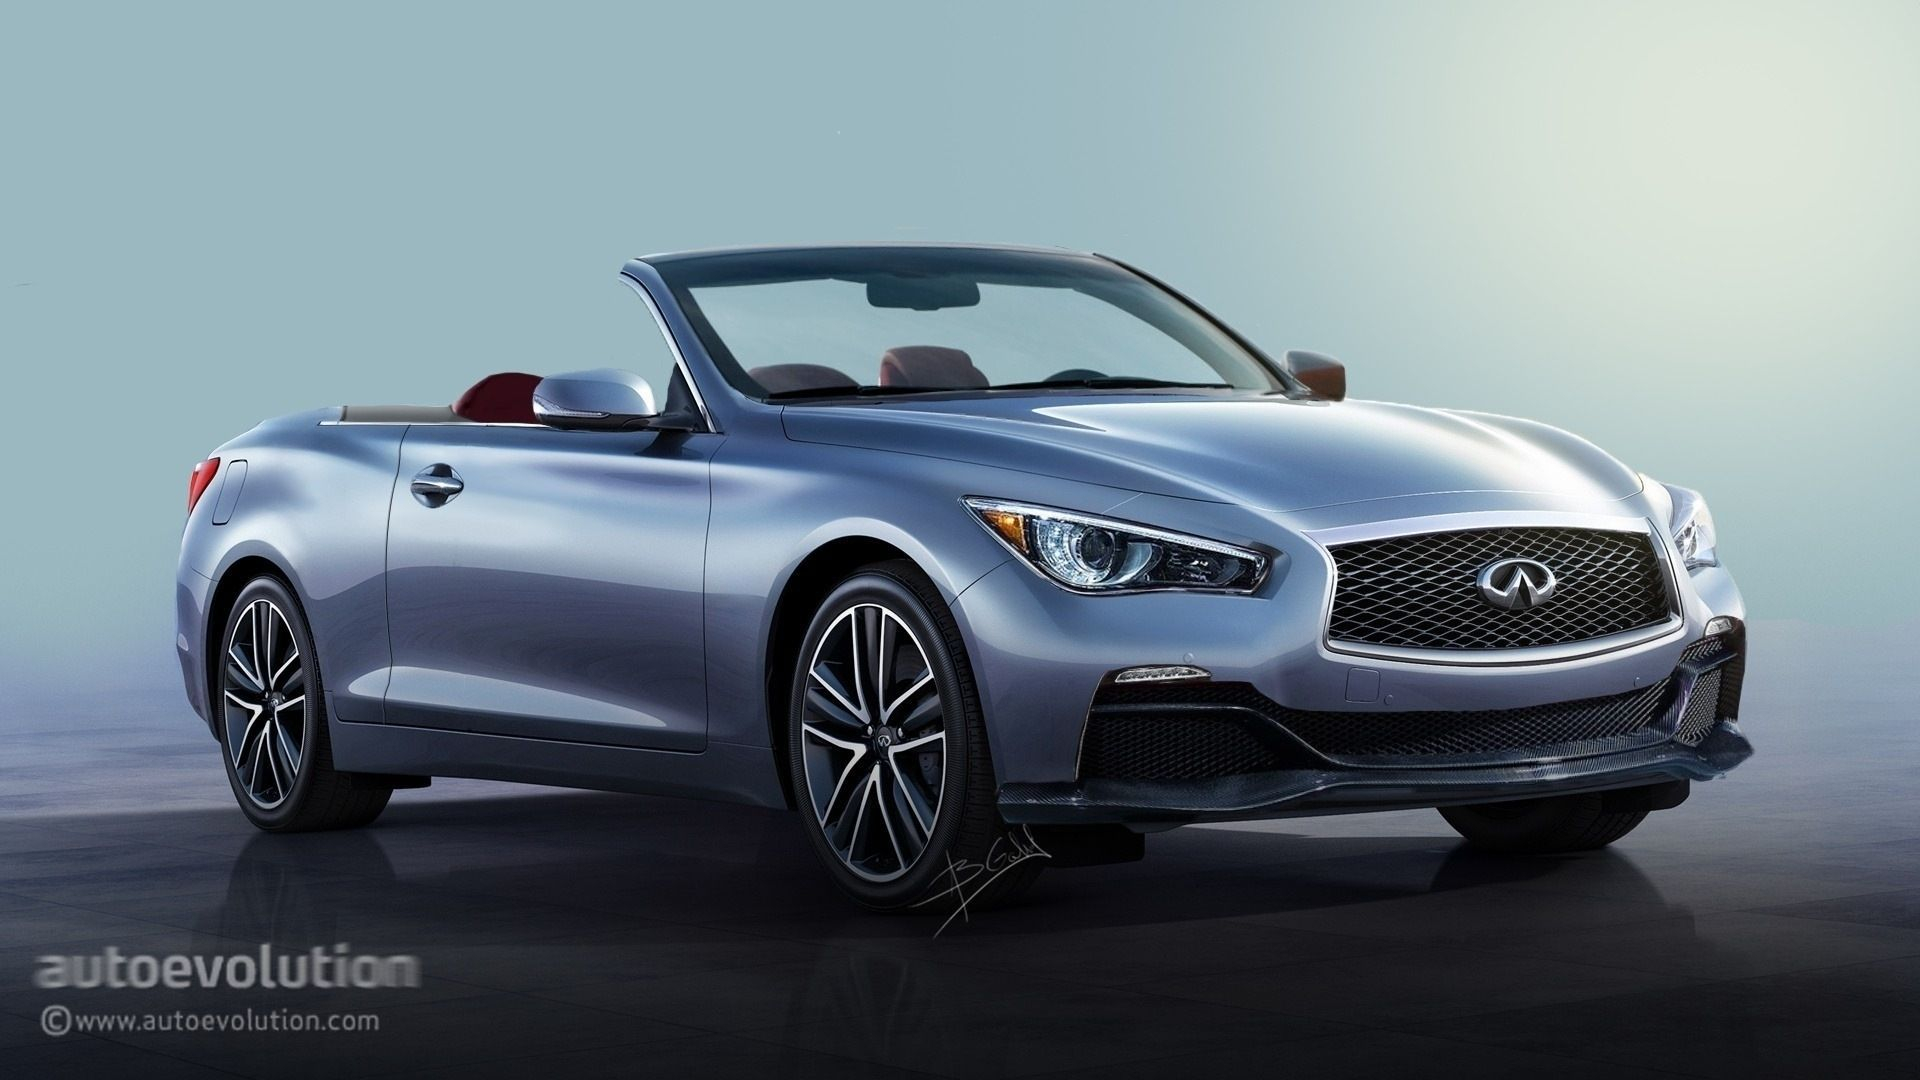 56 Best 2020 Infiniti Q60 Coupe Convertible Images